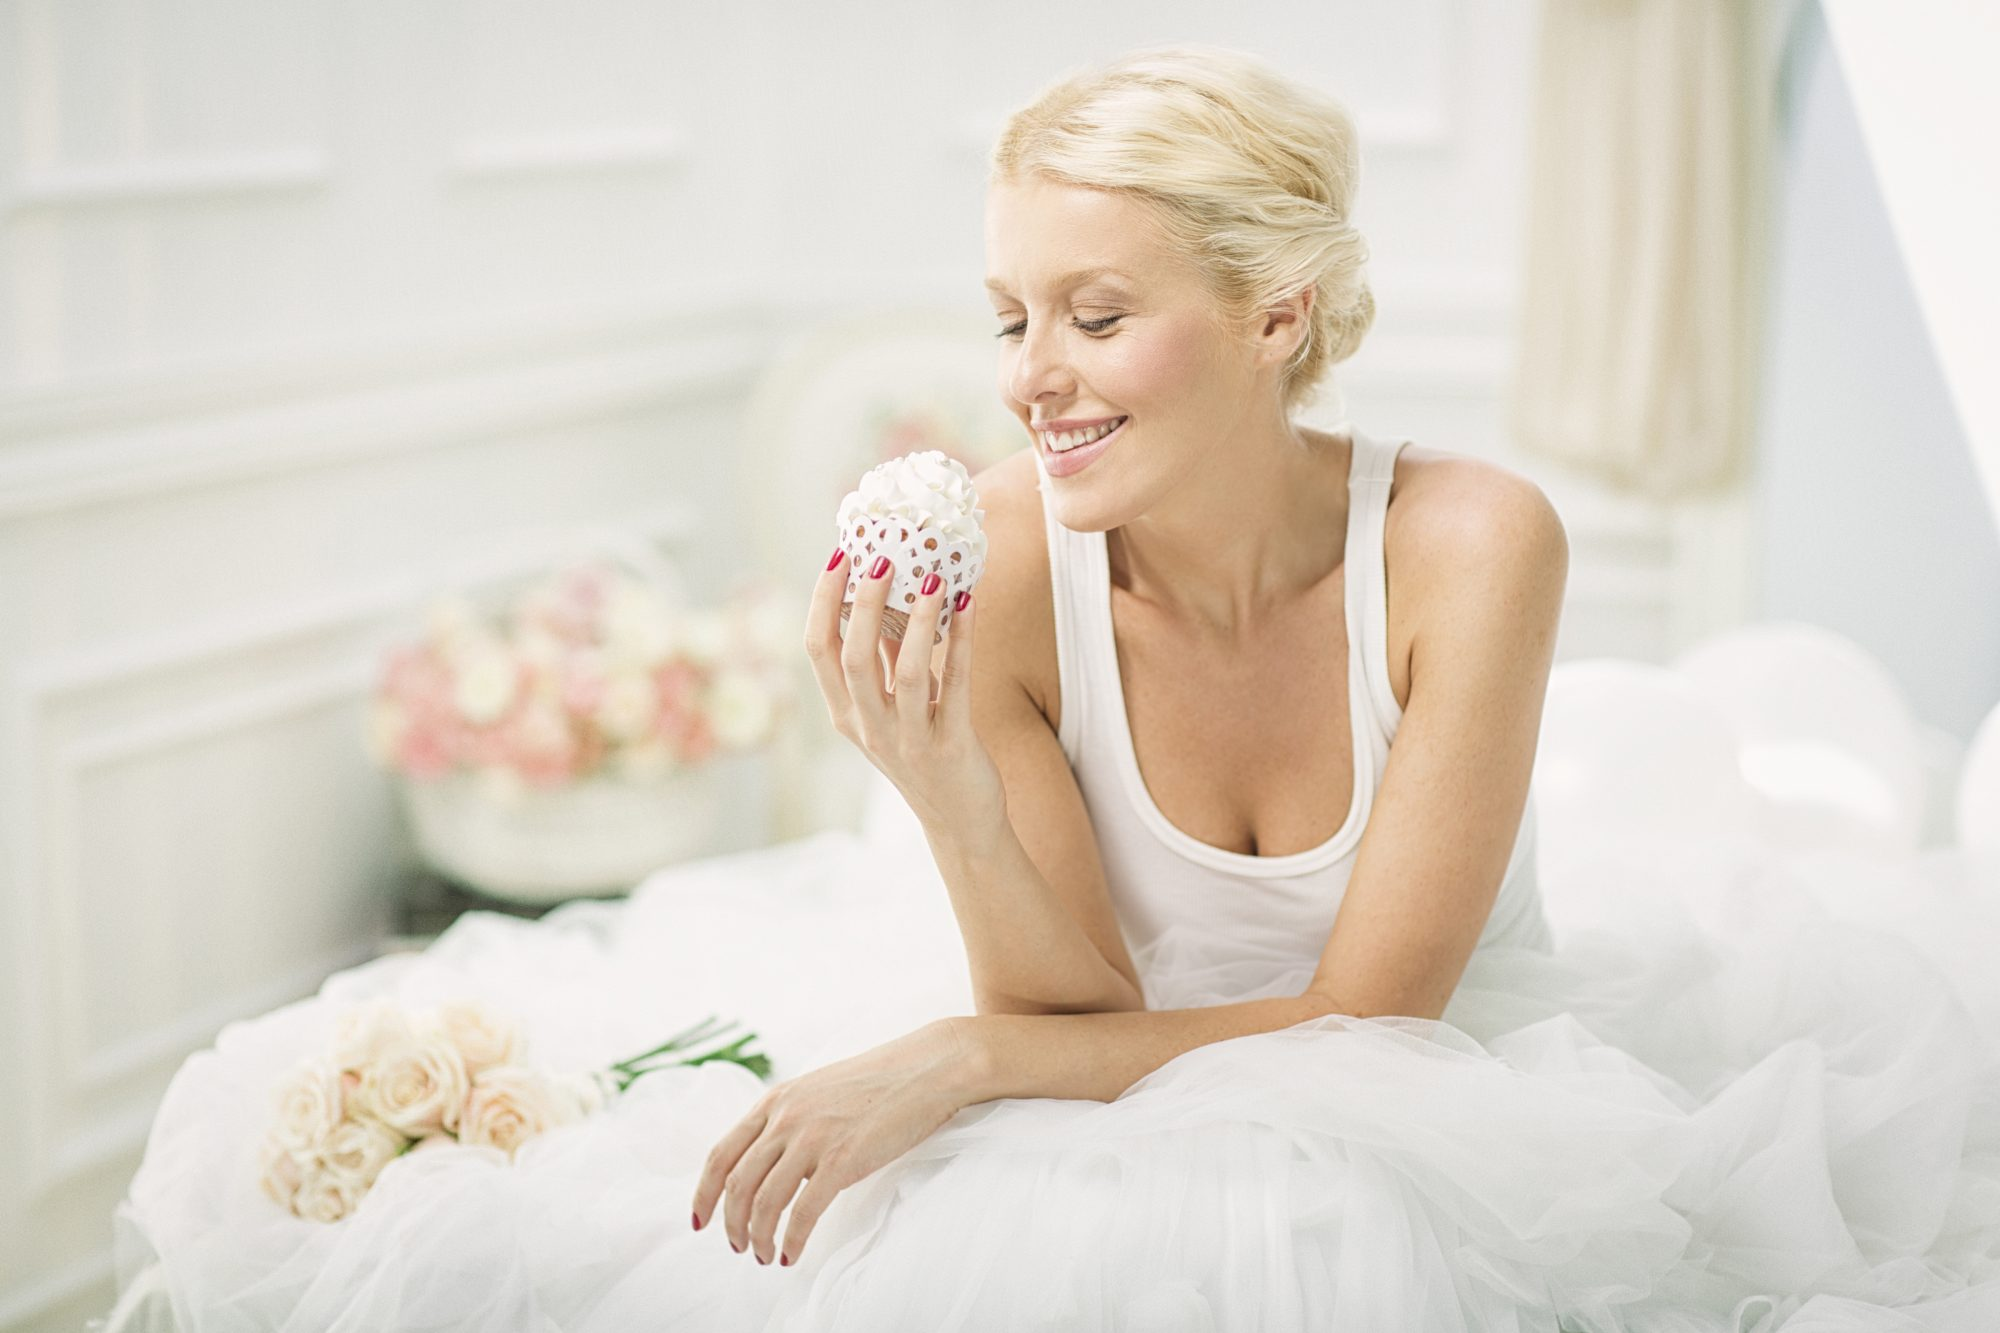 Bride Eating Cupcake While Getting Ready